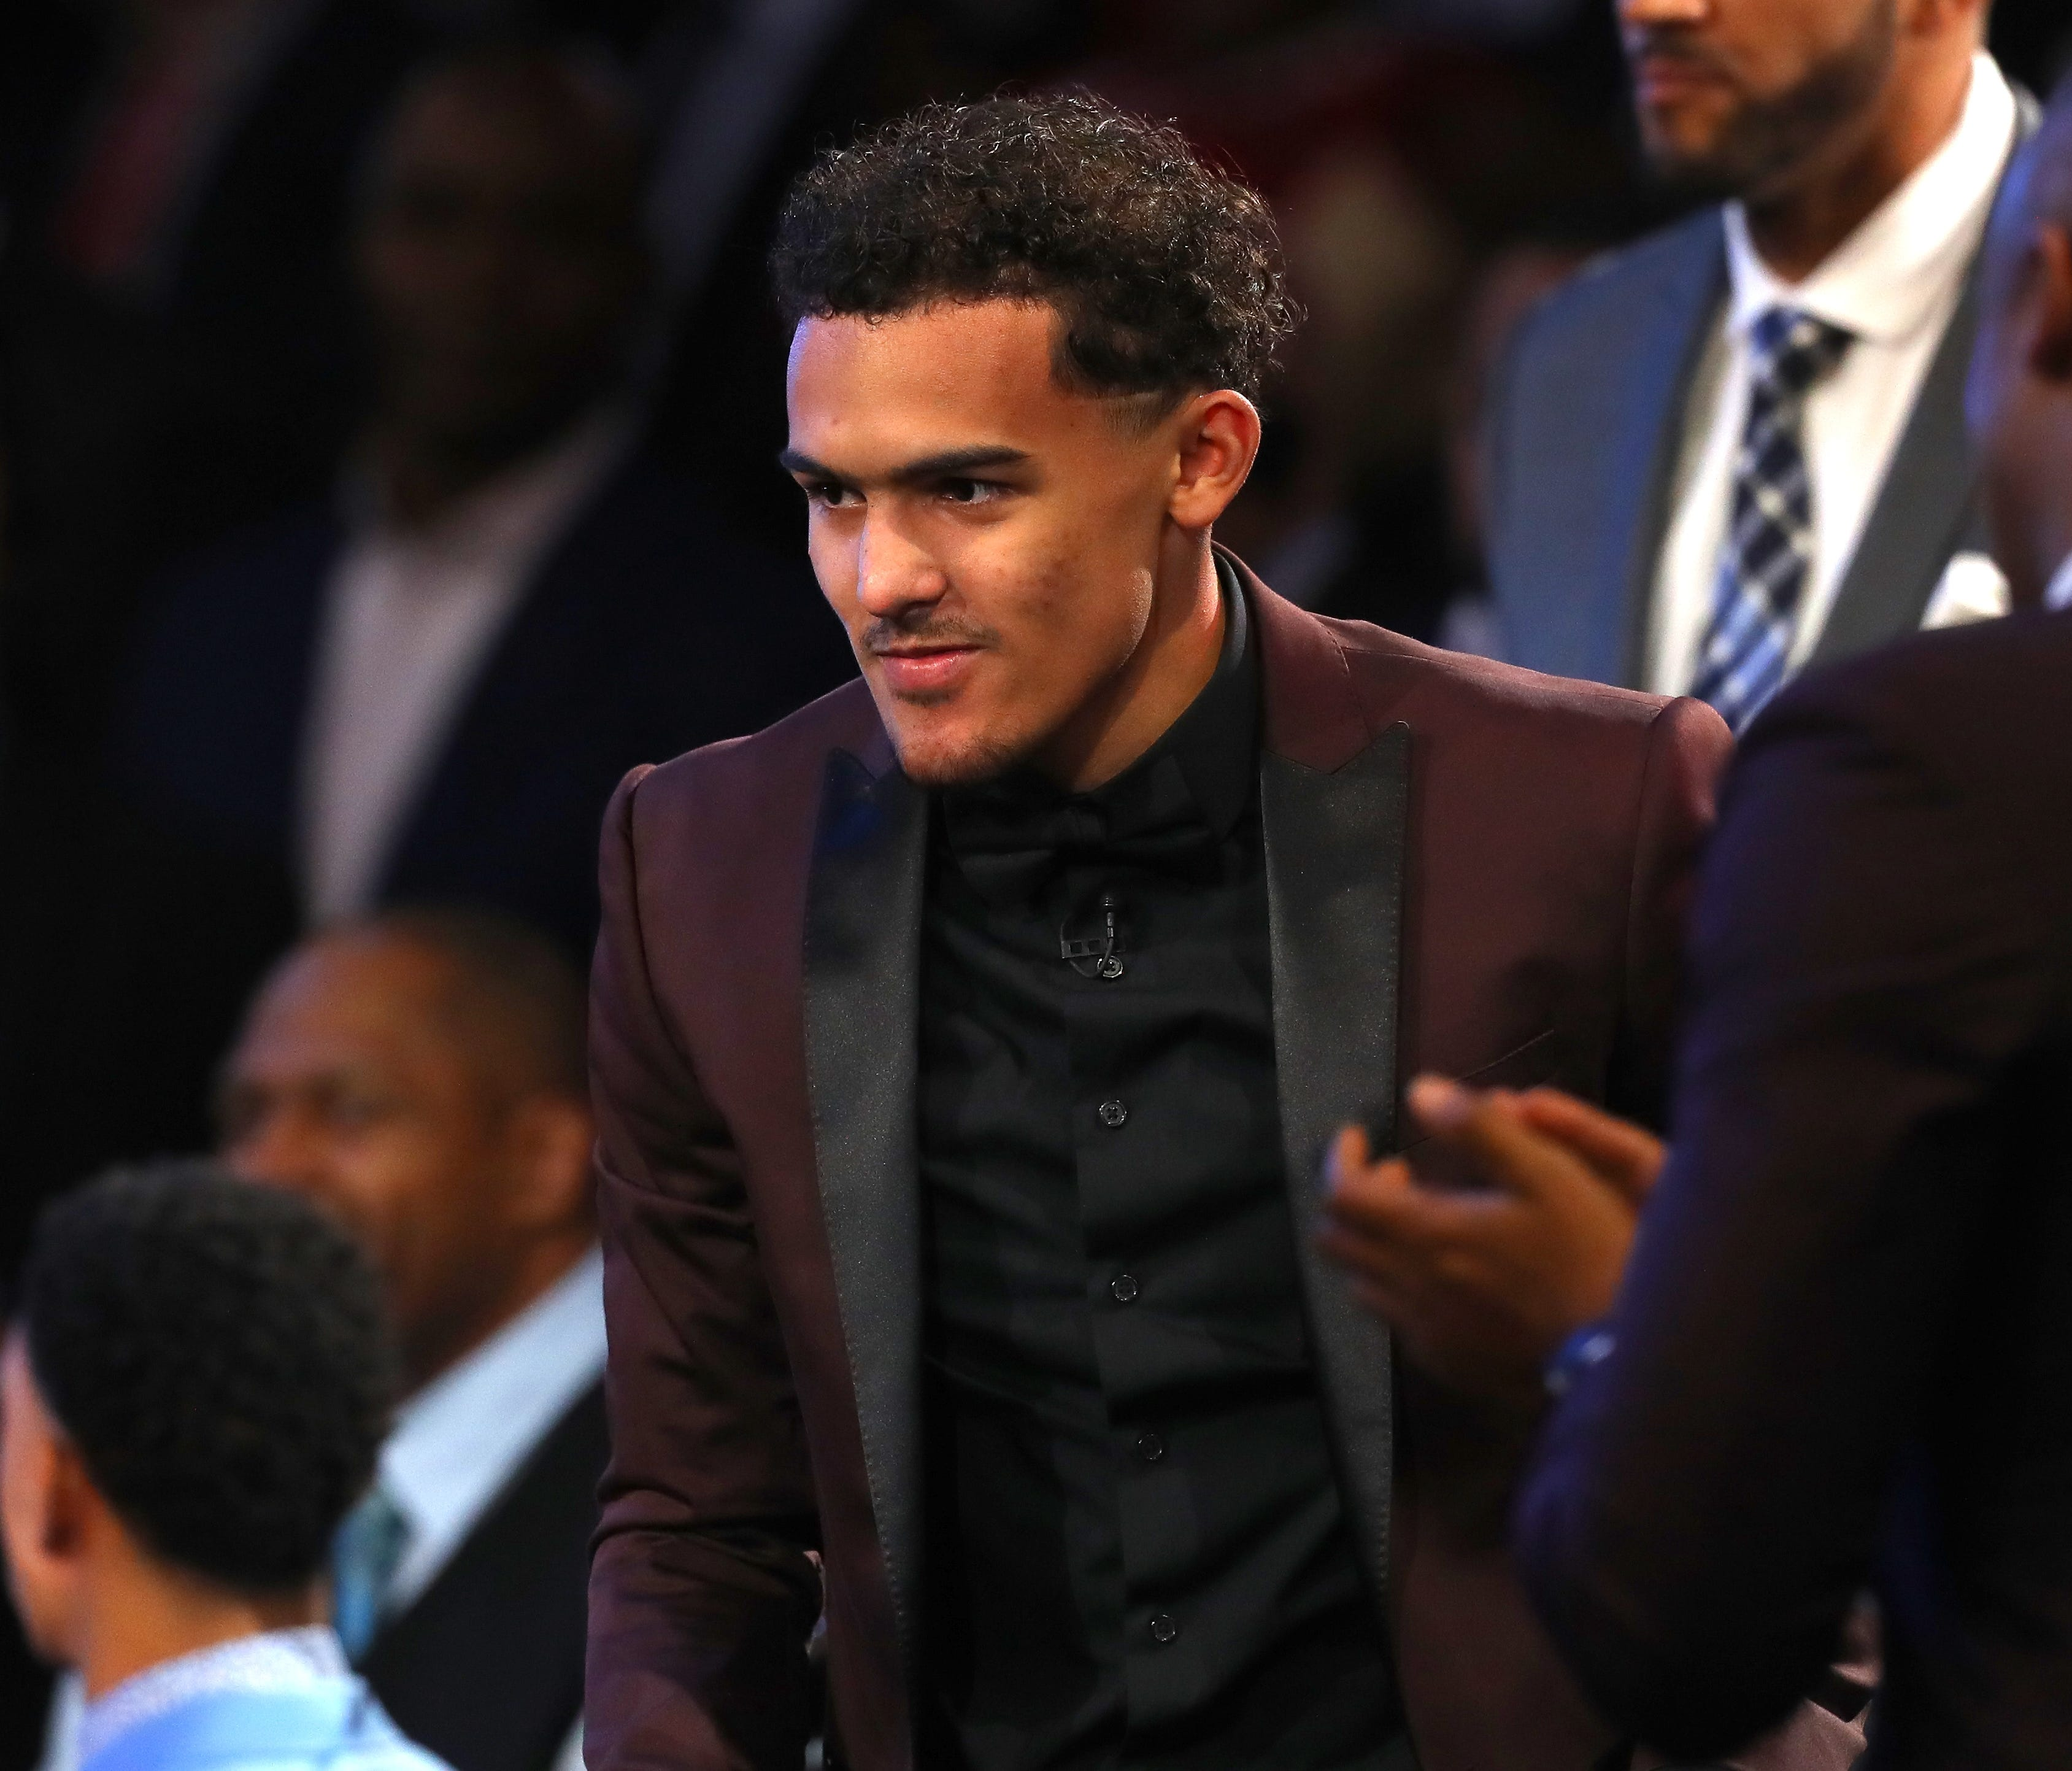 Trae Young reacts after being drafted fifth overall by the Dallas Mavericks during the 2018 NBA draft.